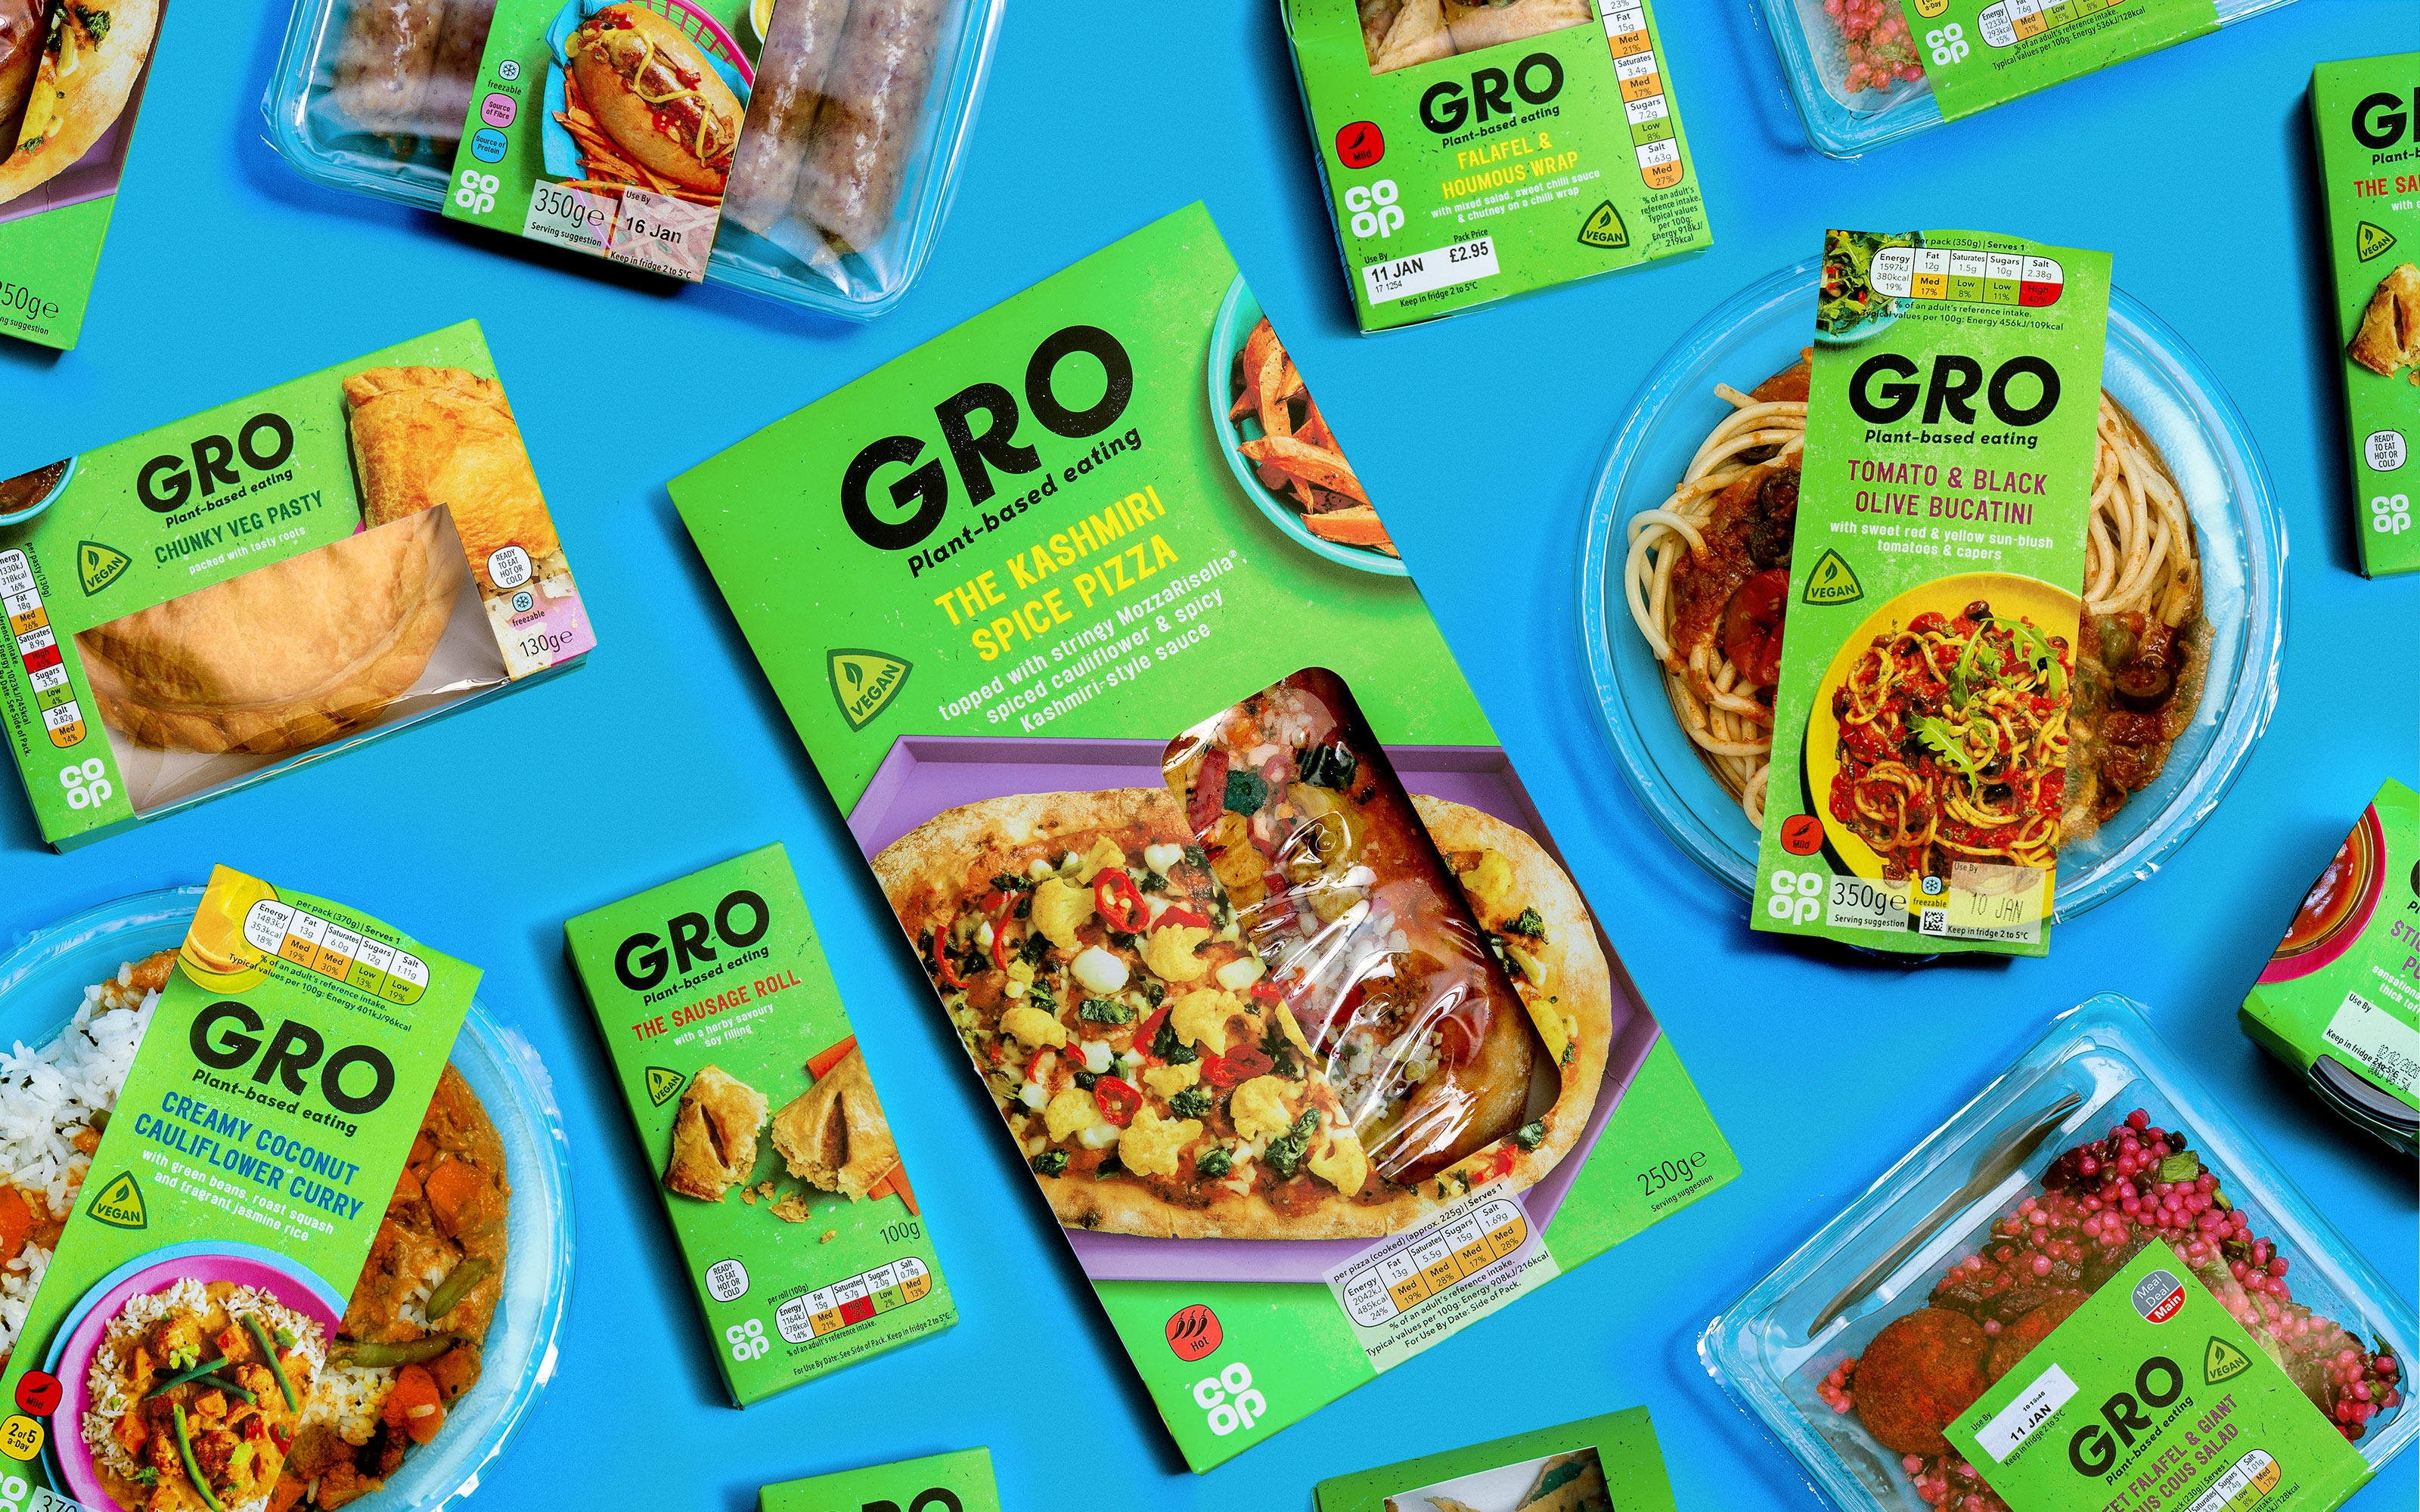 Robot Food create new vegan brand GRO for Co-op